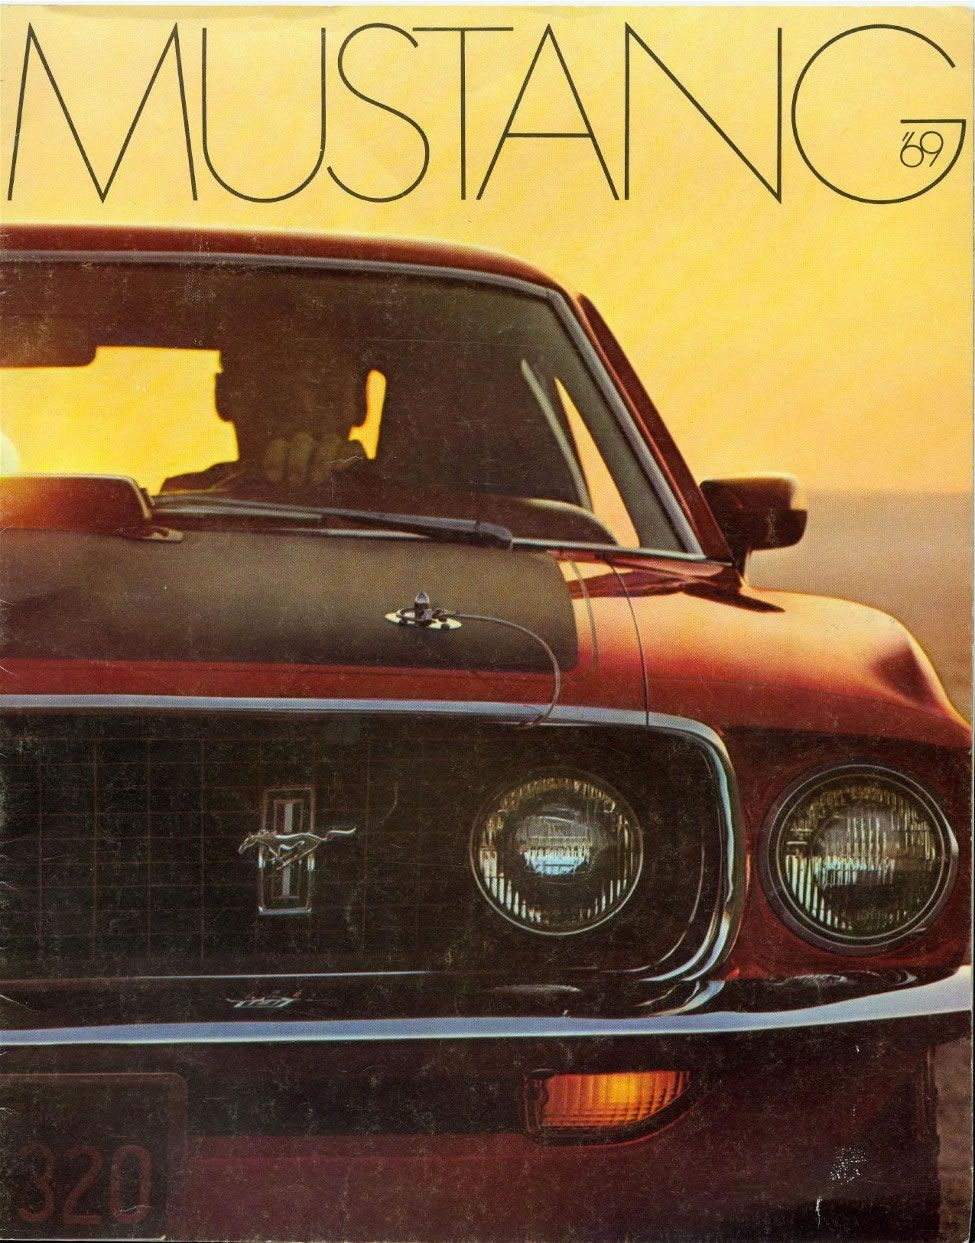 1969 Mustang Brochure With Images Ford Mustang Ford Mustang